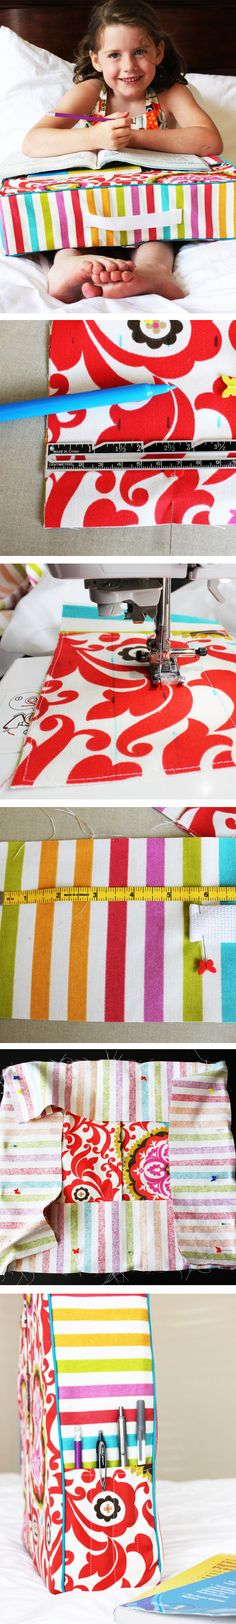 Love, love, love this project from @Amy Lyons Lyons Bell! Craft your own study pillow with her awesome free tutorial! #creativitymadesimple #cre8simple